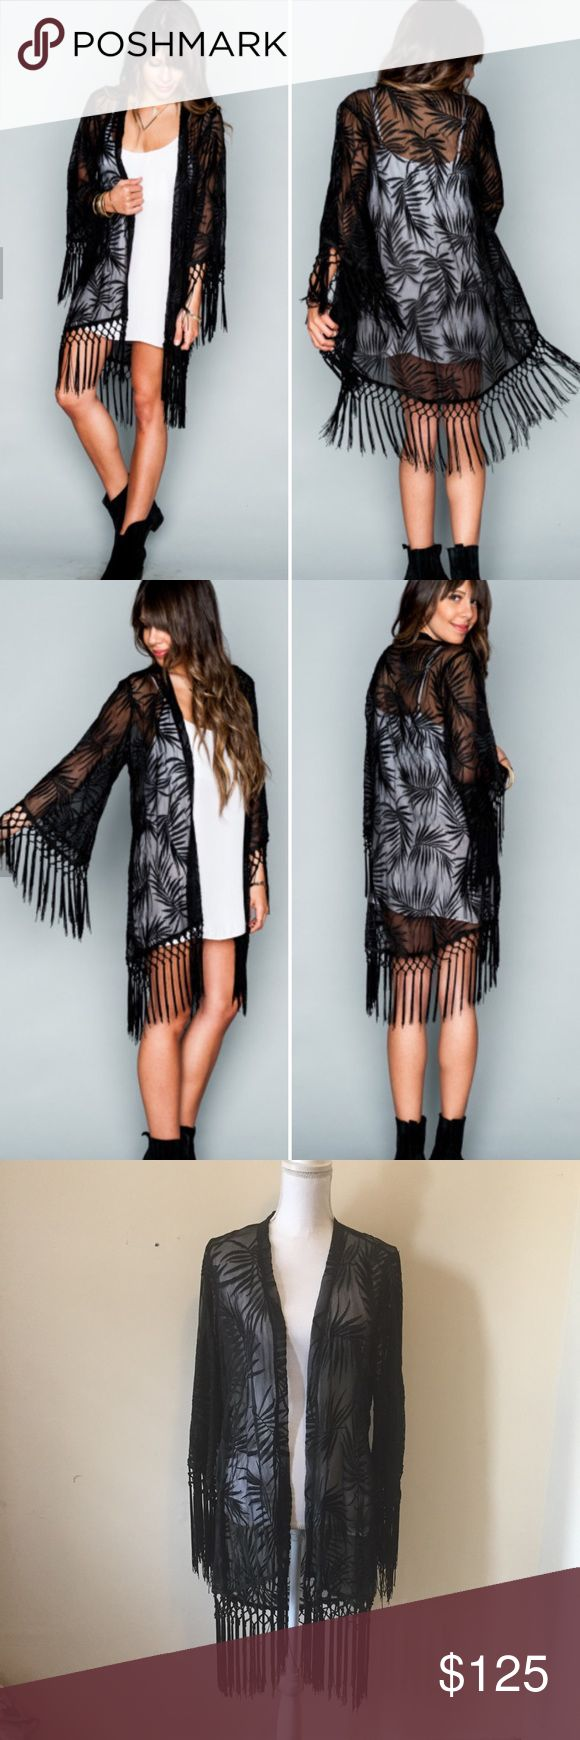 Show Me Your Mumu Metzler Fringe Kimono Leafy Luxe Saunter through the day in the elegant Leafy Luxe Black. Sheer chiffon littered with embroidered leaves give you that perfect ethereal boho look. Metzler Kimono is absolutely the best thing to wear no matter what you're up to. She wraps you up to keep you comfortable, with a dramatic fringe on the end to really show people you have style down to a T.   *100% Poly. Semi-Sheer. Fringe on sleeves and along bottom edge. New with tags. Size…